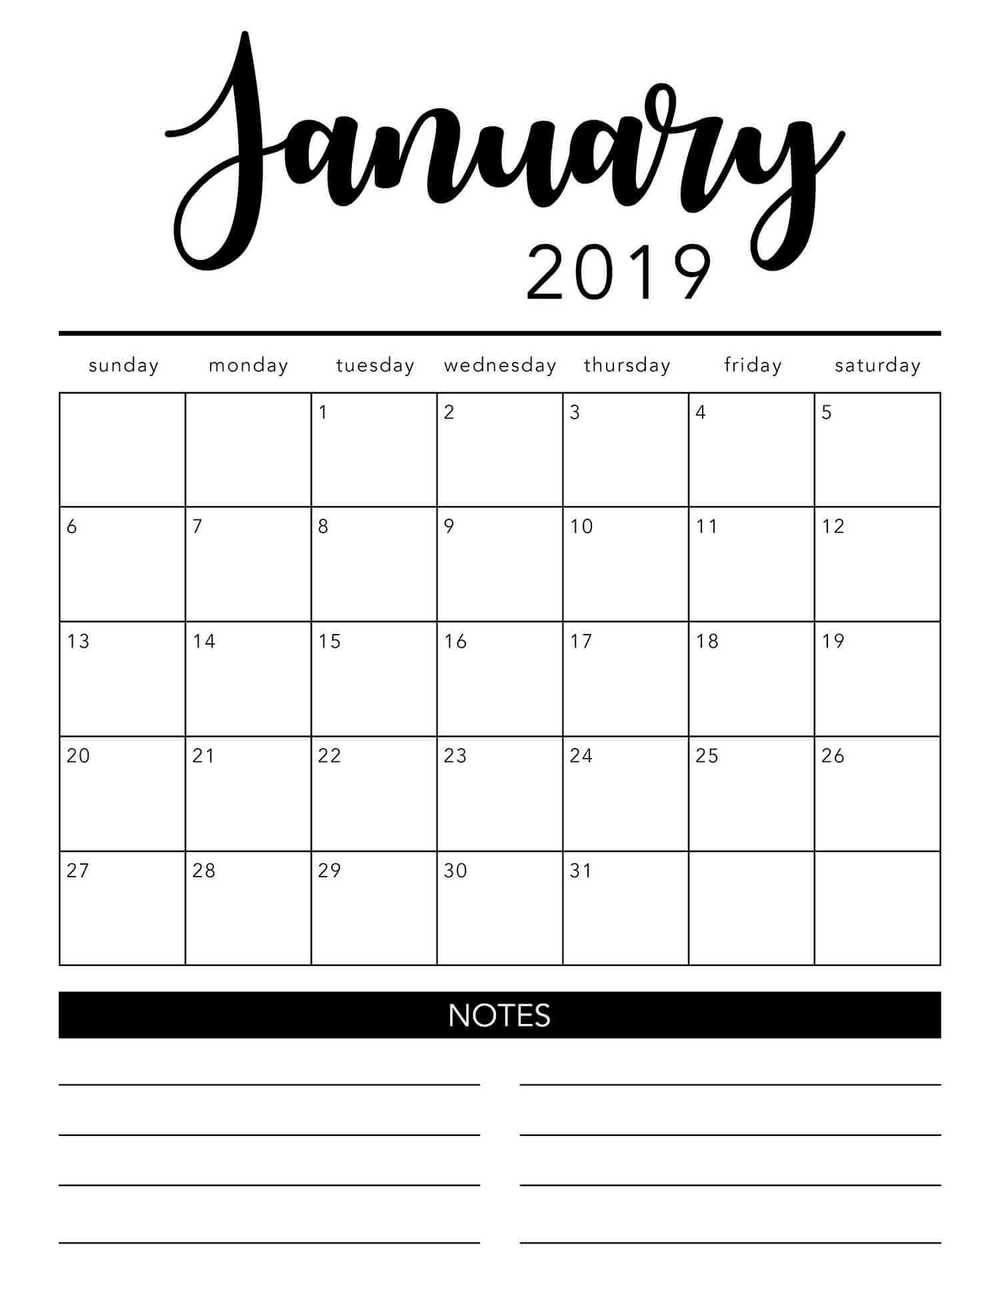 Free 2019 Printable Calendar Template (2 Colors!) - I Heart Naptime throughout Monthly Calendars To Print Colorful